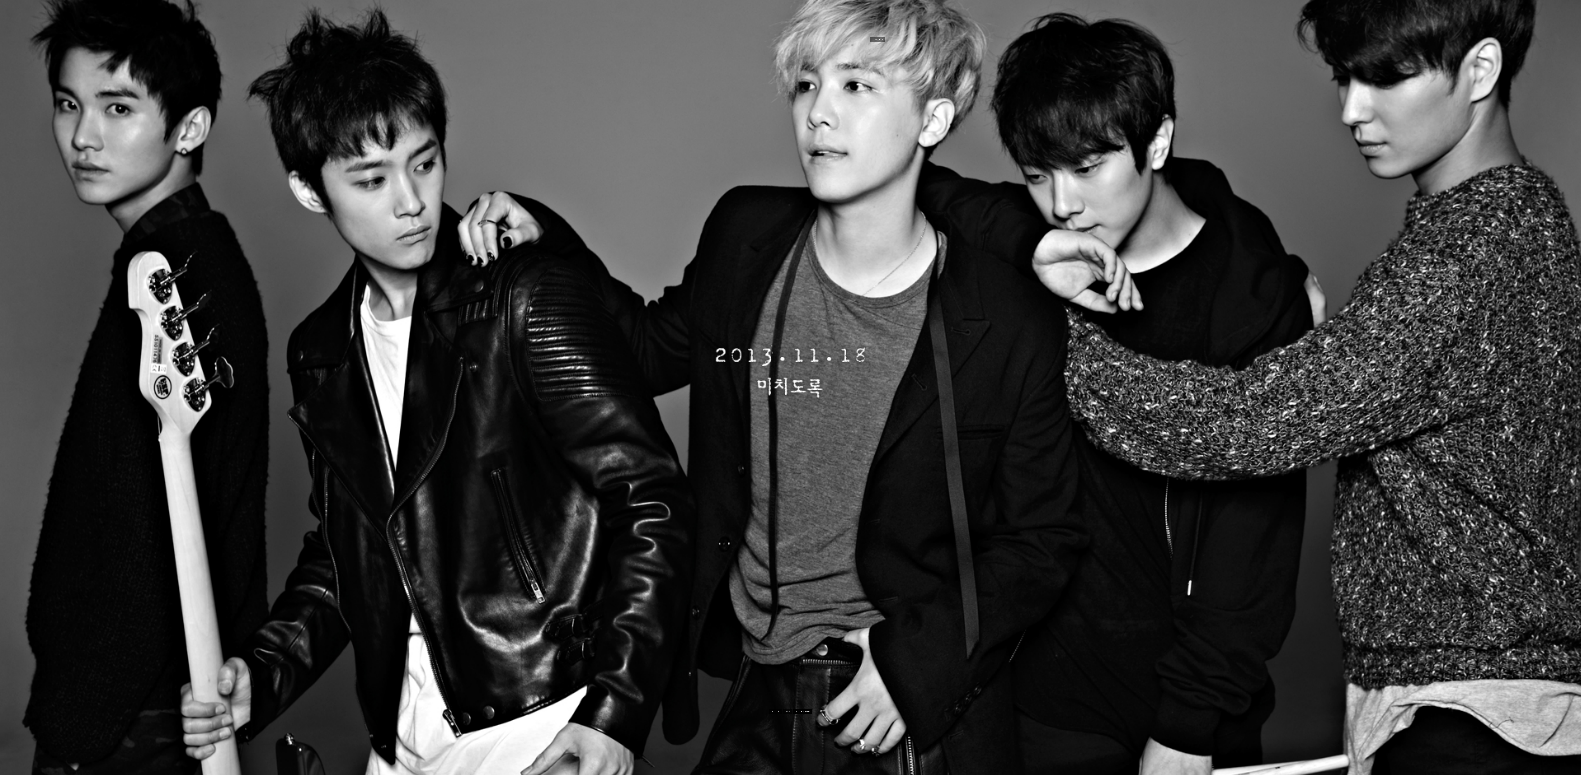 121113 - ftisland teaser @ the mood